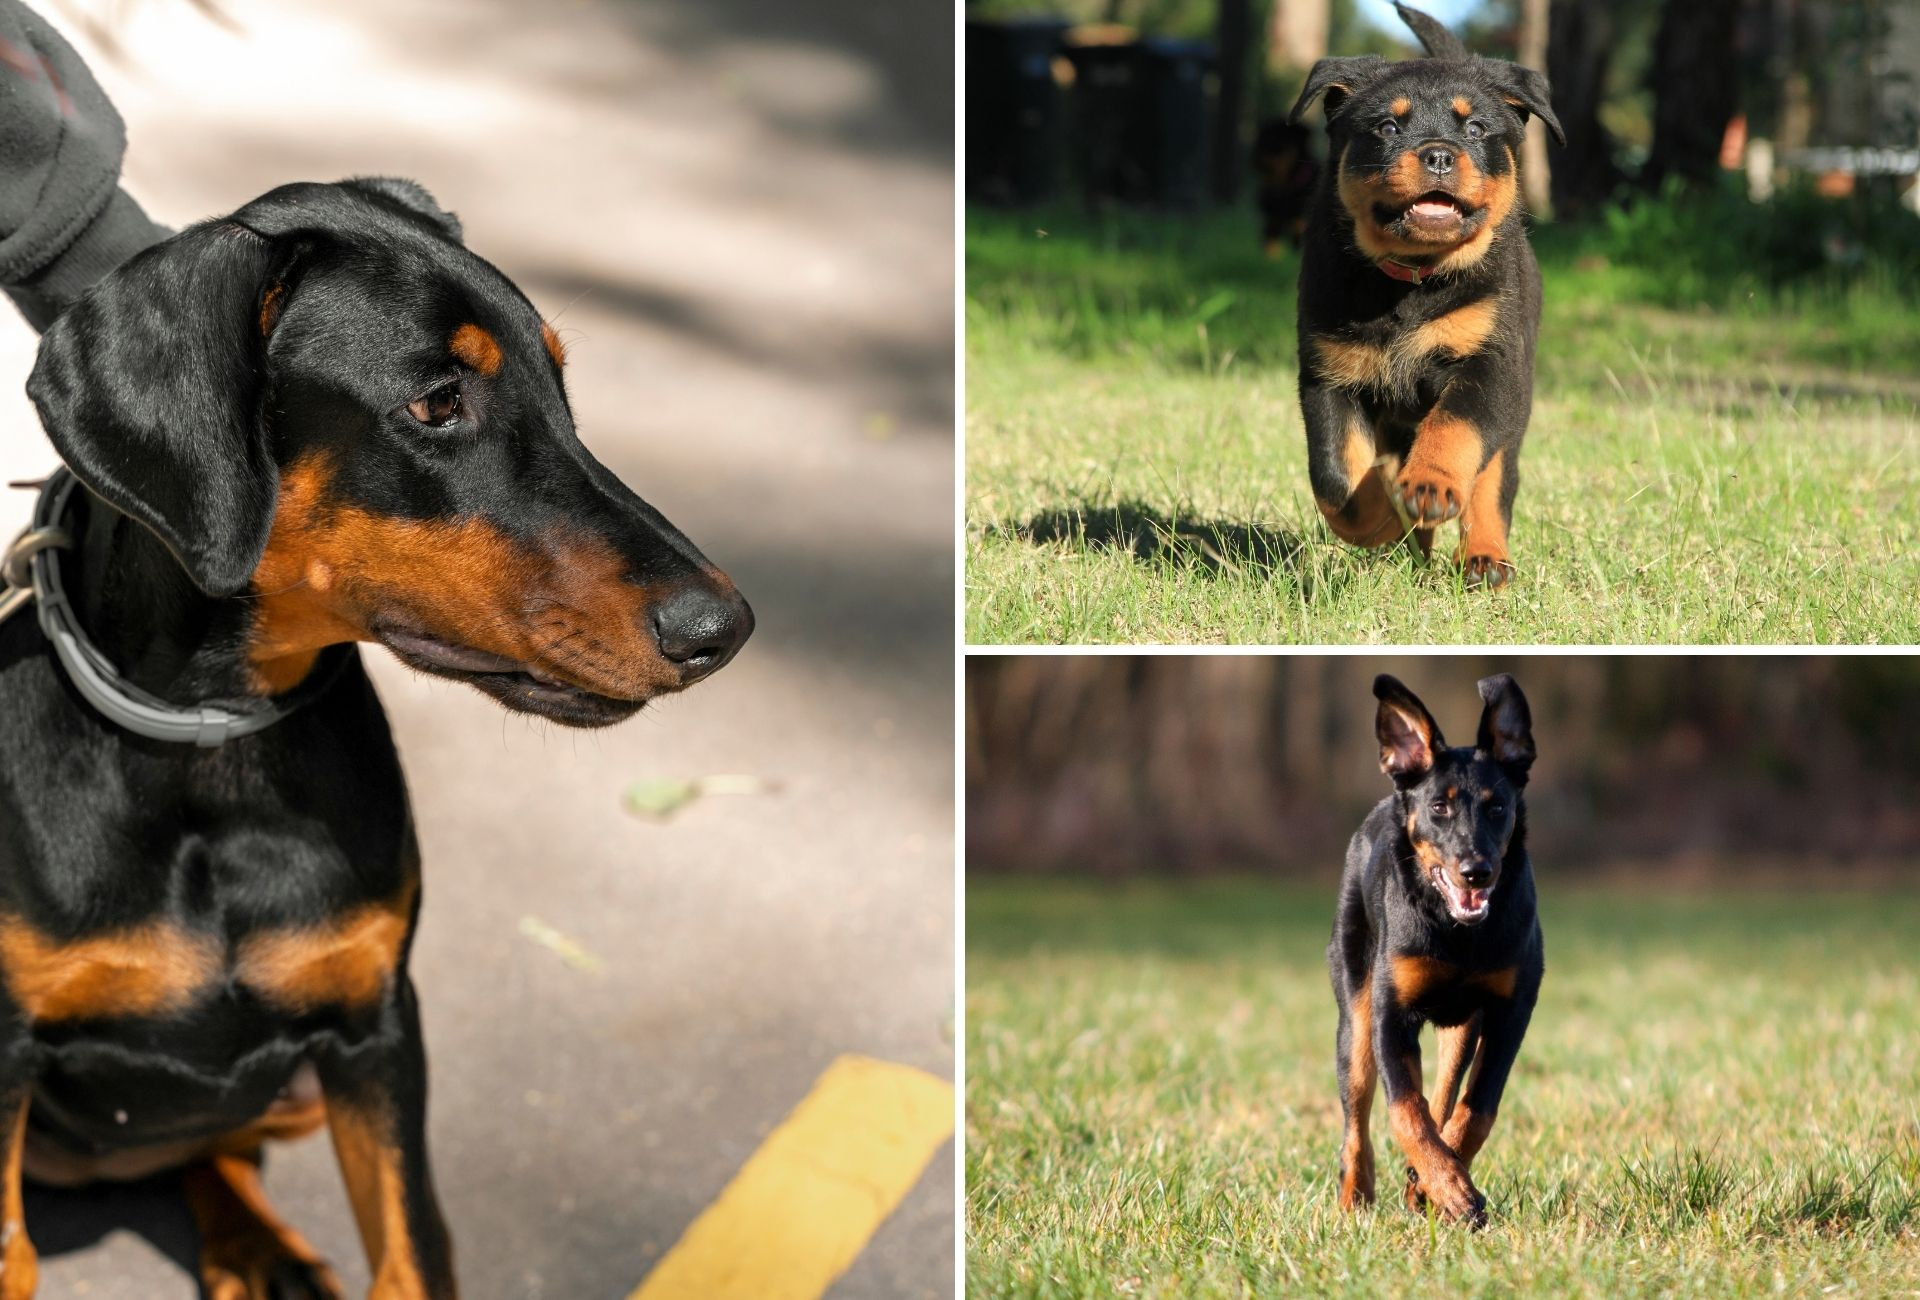 Doberman on the right side and a Rottweiler and Beauceron puppy on the right running on the grass.